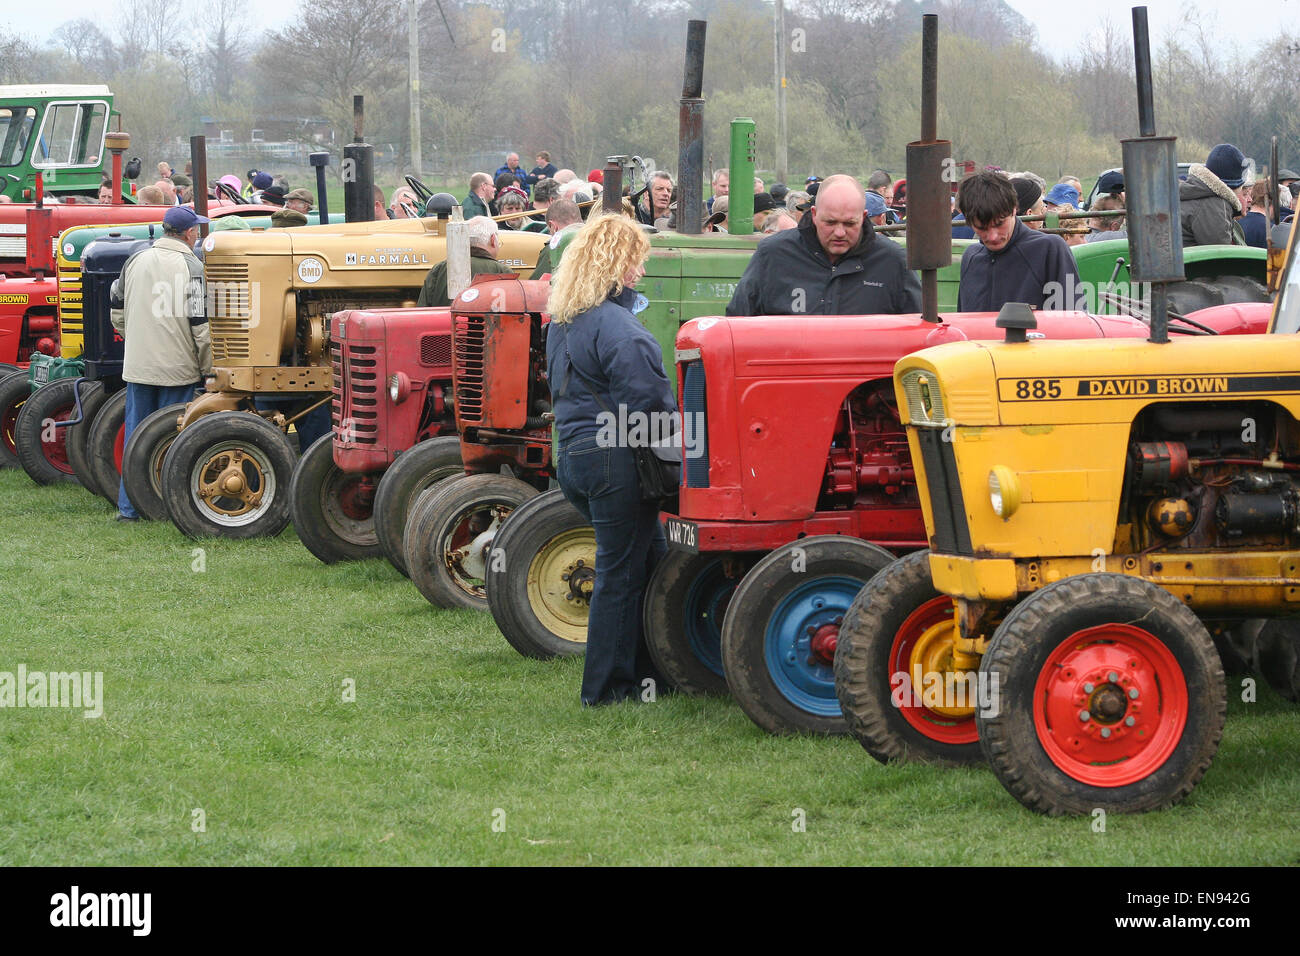 Prospective buyers examine a line of old farm tractors for sale at ...